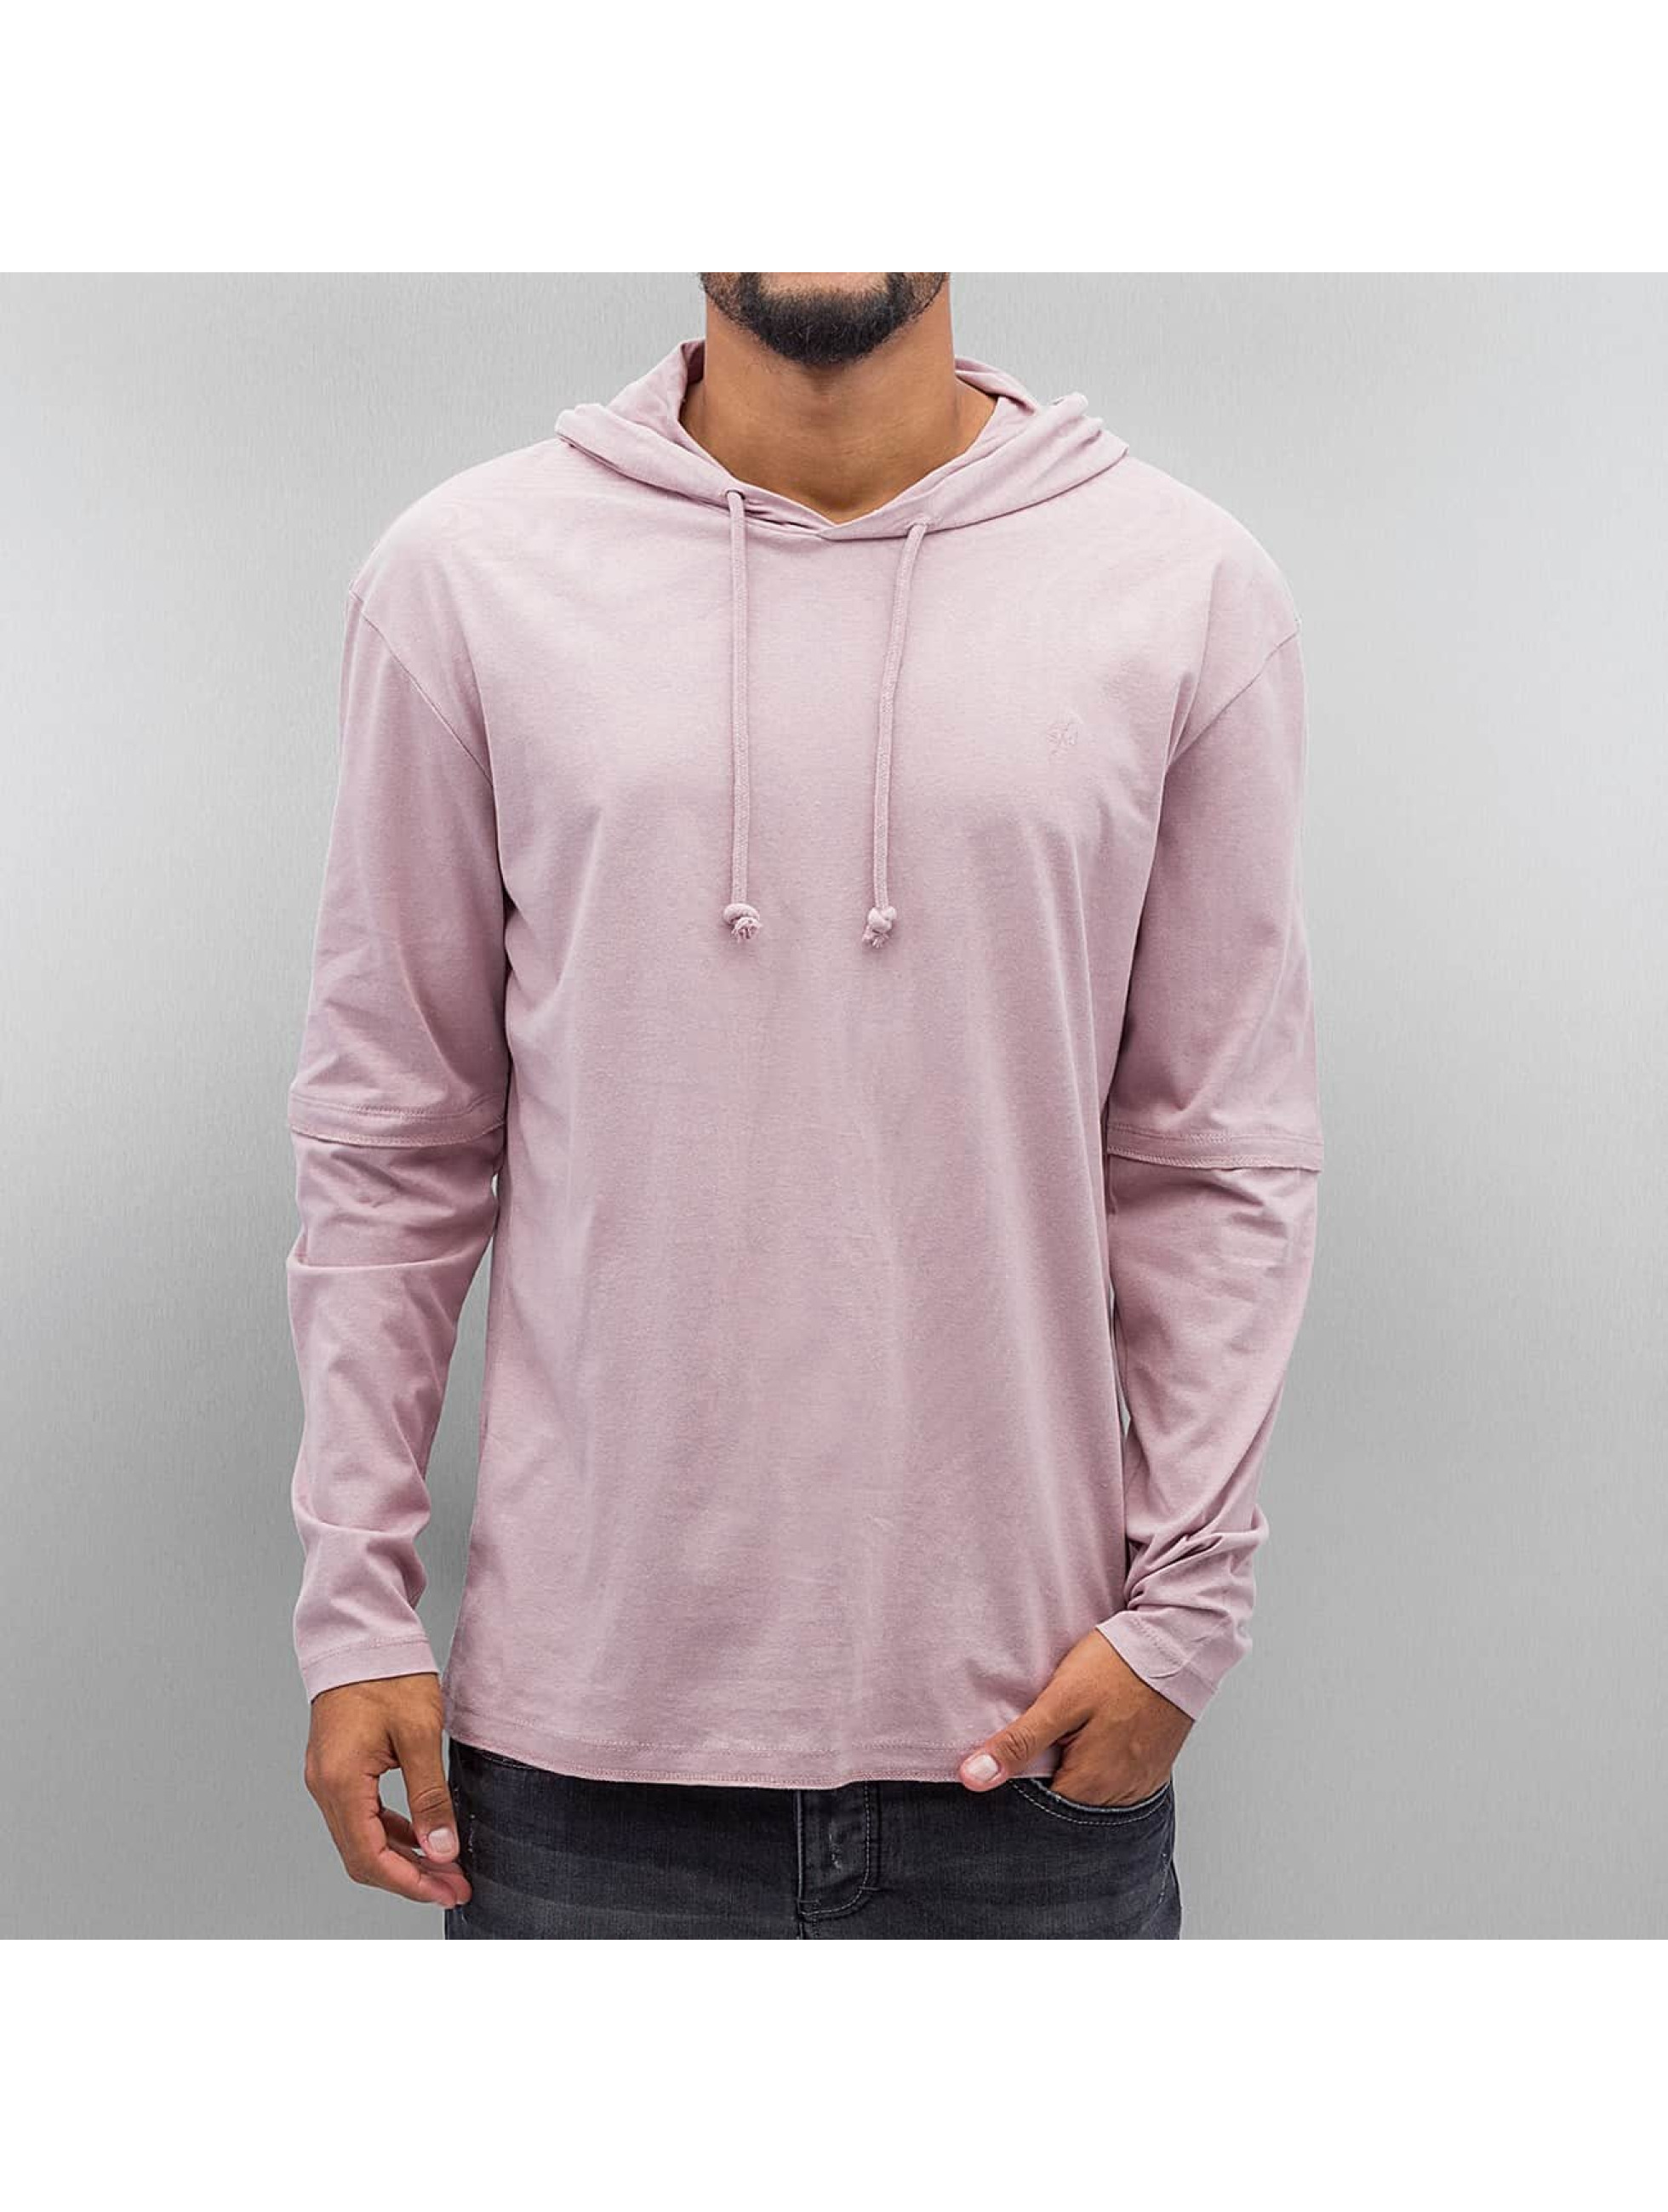 Jack & Jones Oberteil / Hoody jorDean in rosa